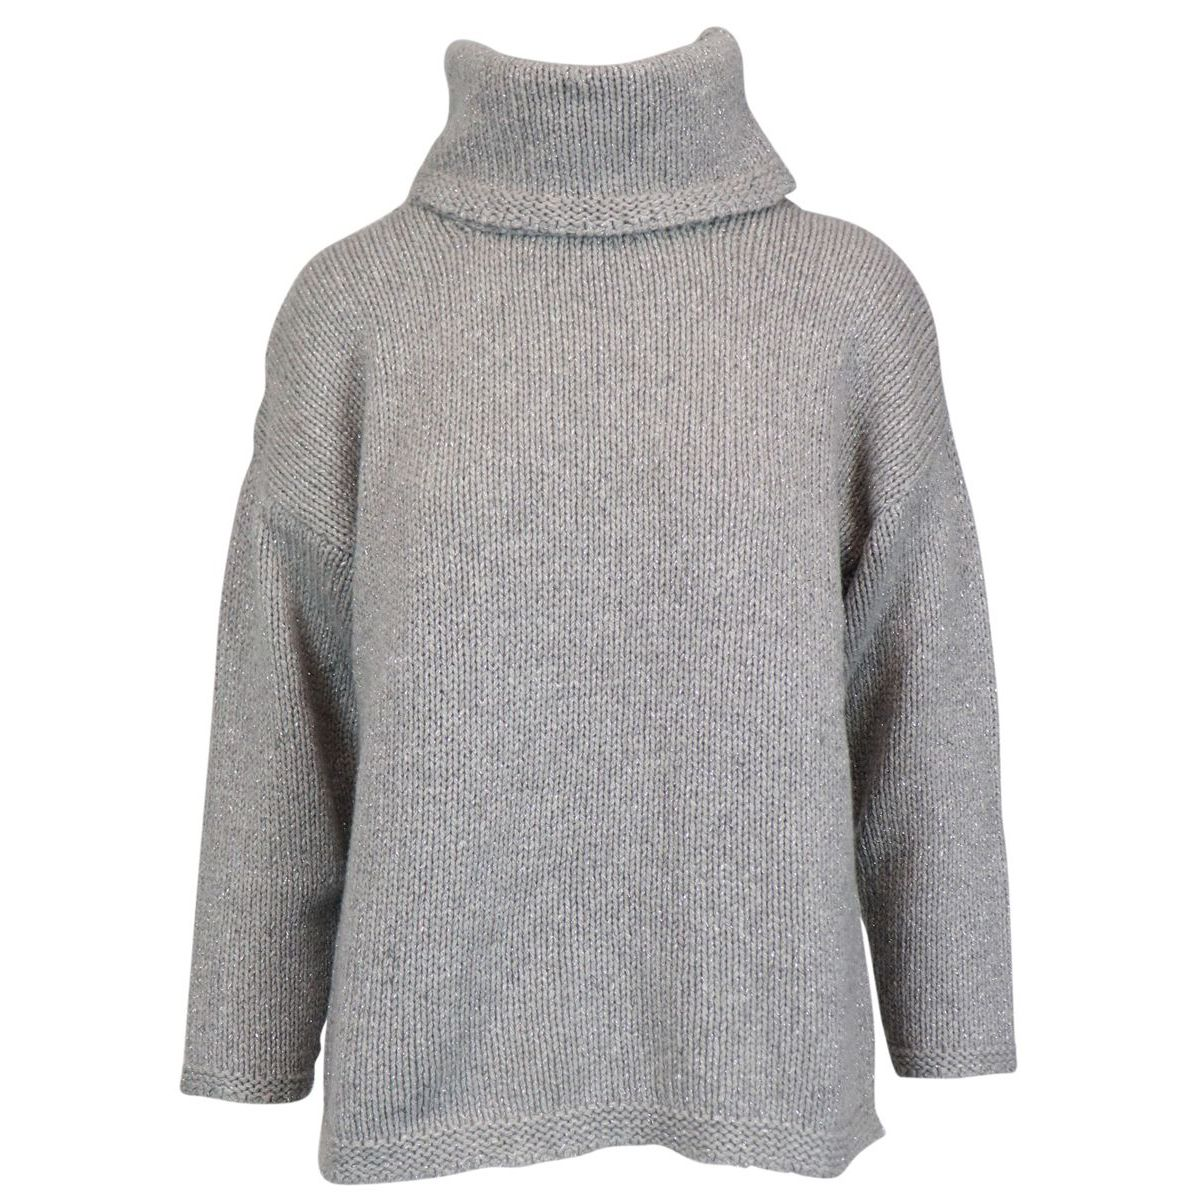 Turtleneck sweater in cashmere with three-quarter sleeves Light grey Gran Sasso